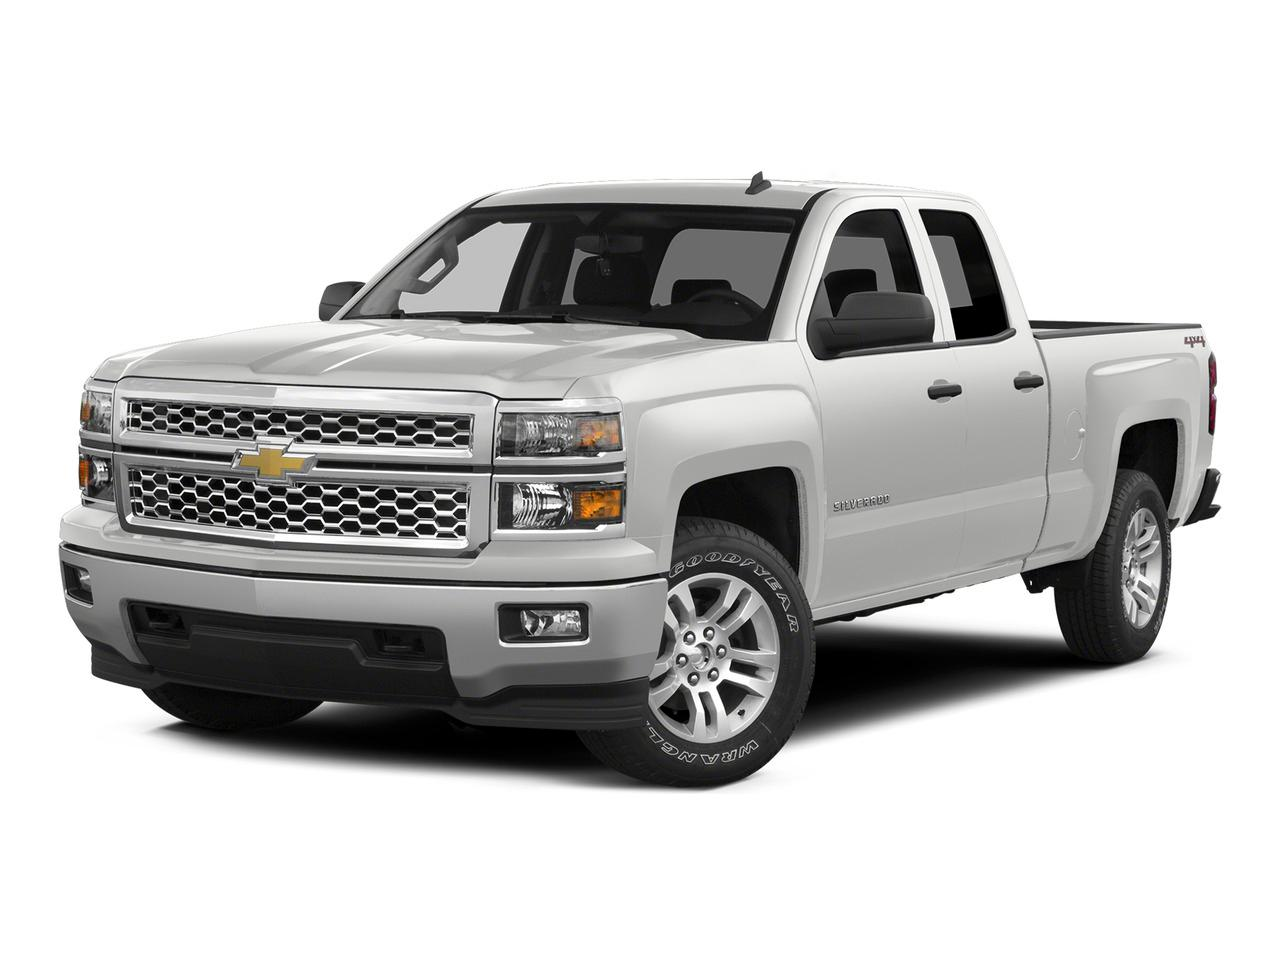 2015 Chevrolet Silverado 1500 Vehicle Photo in San Antonio, TX 78230